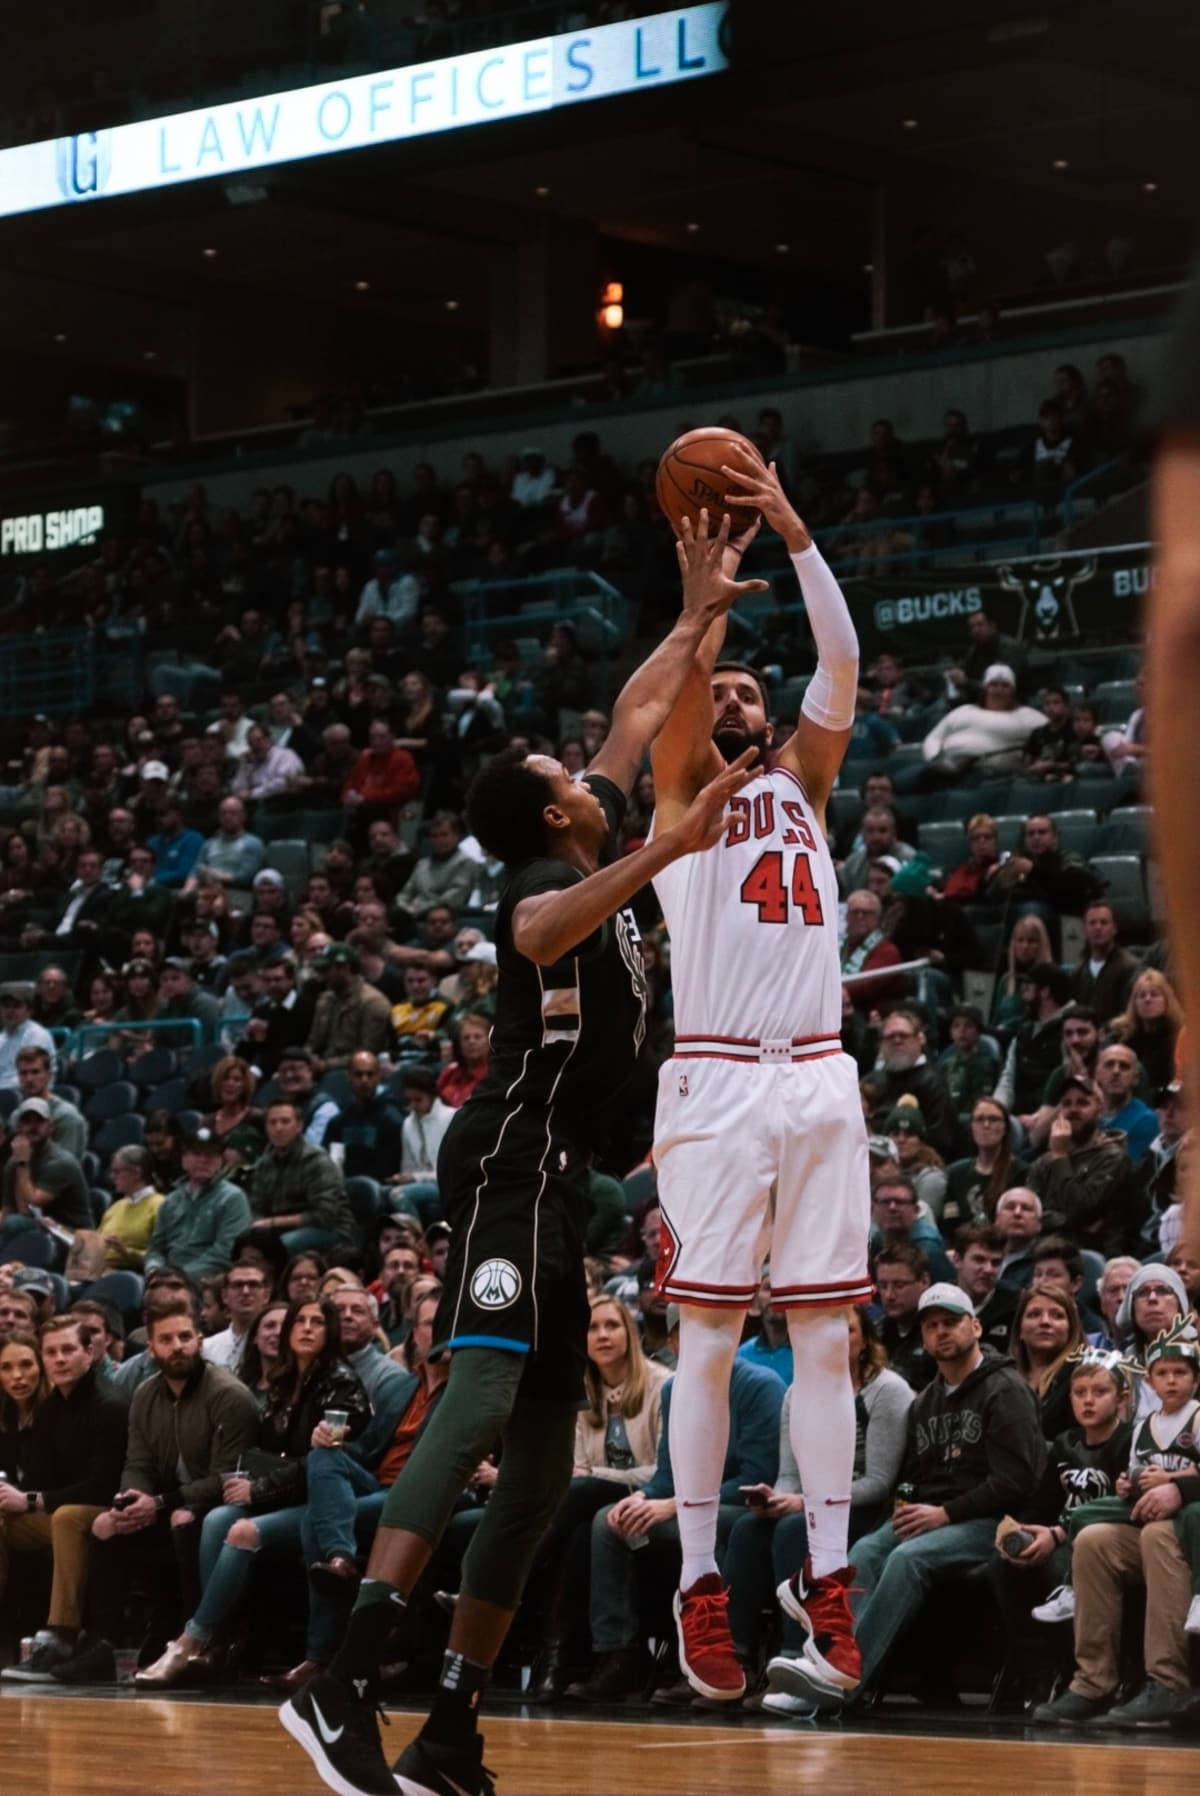 Niko Mirotic with a shot over Milwaukee on December 15th, 2017.